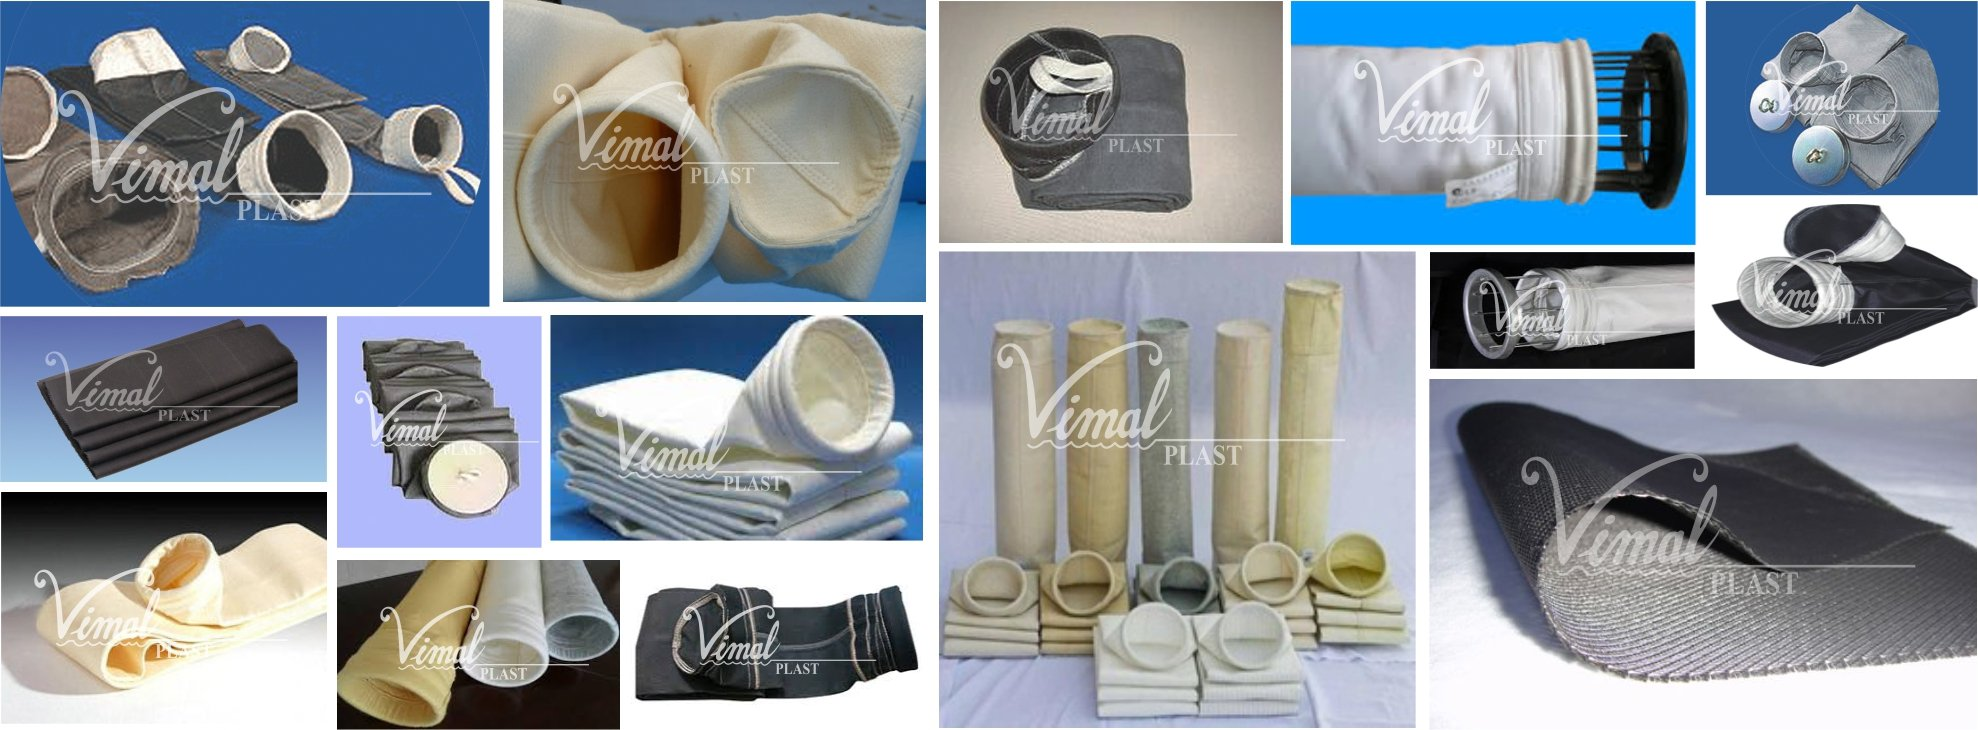 vimal plast products